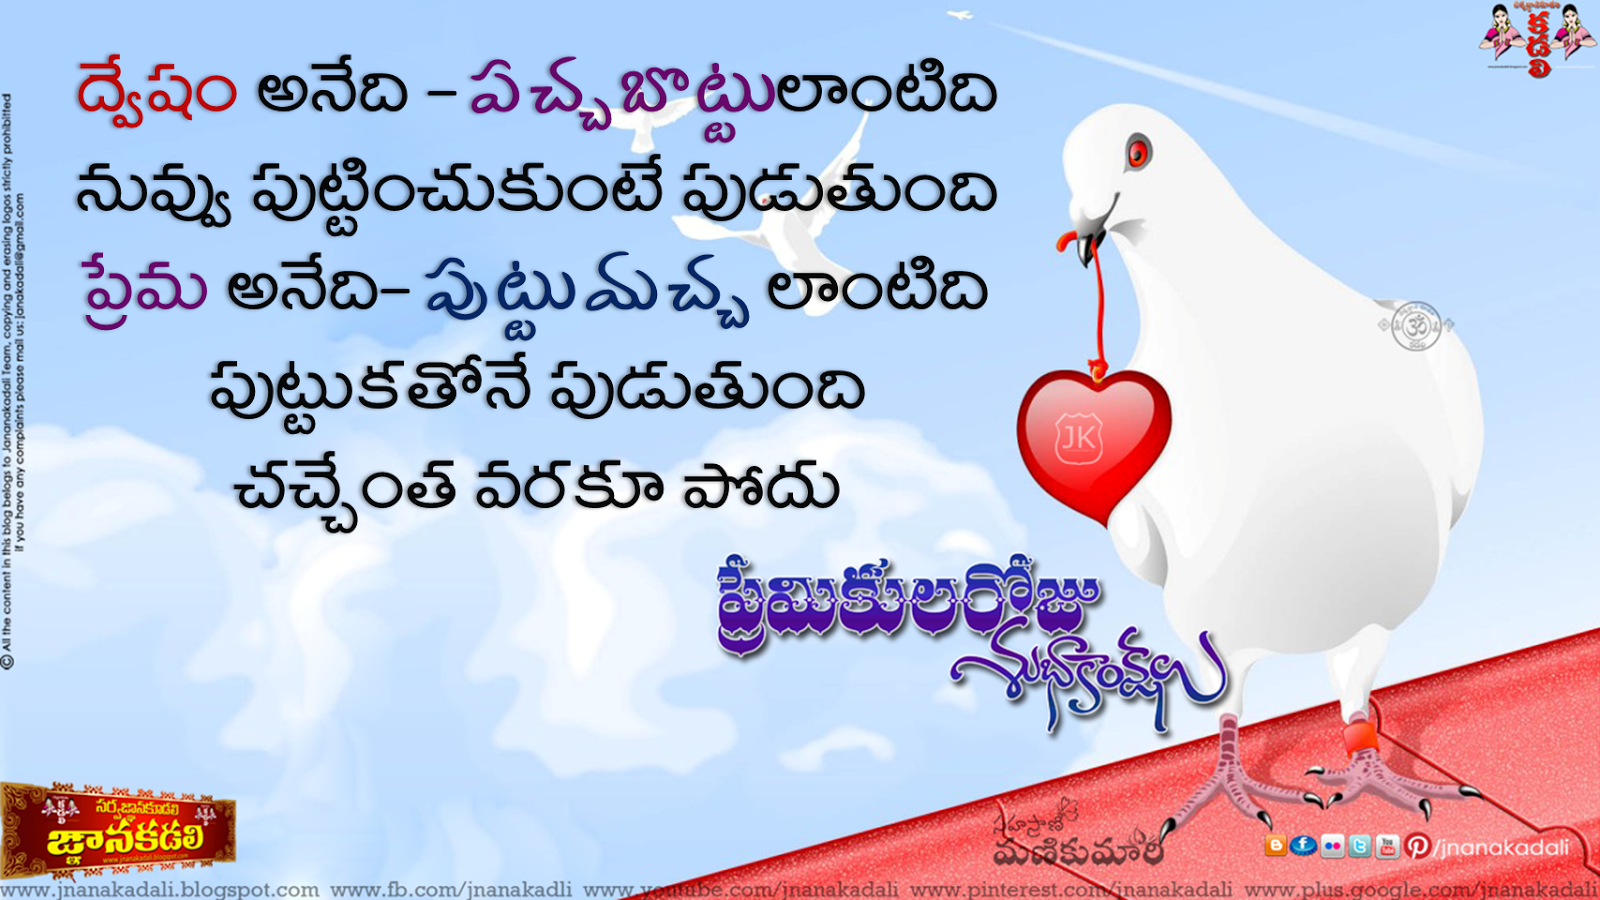 valentines day quotes for girlfriend in telugu - The Mark Love Did Not Erase Until Our Death Best telugu